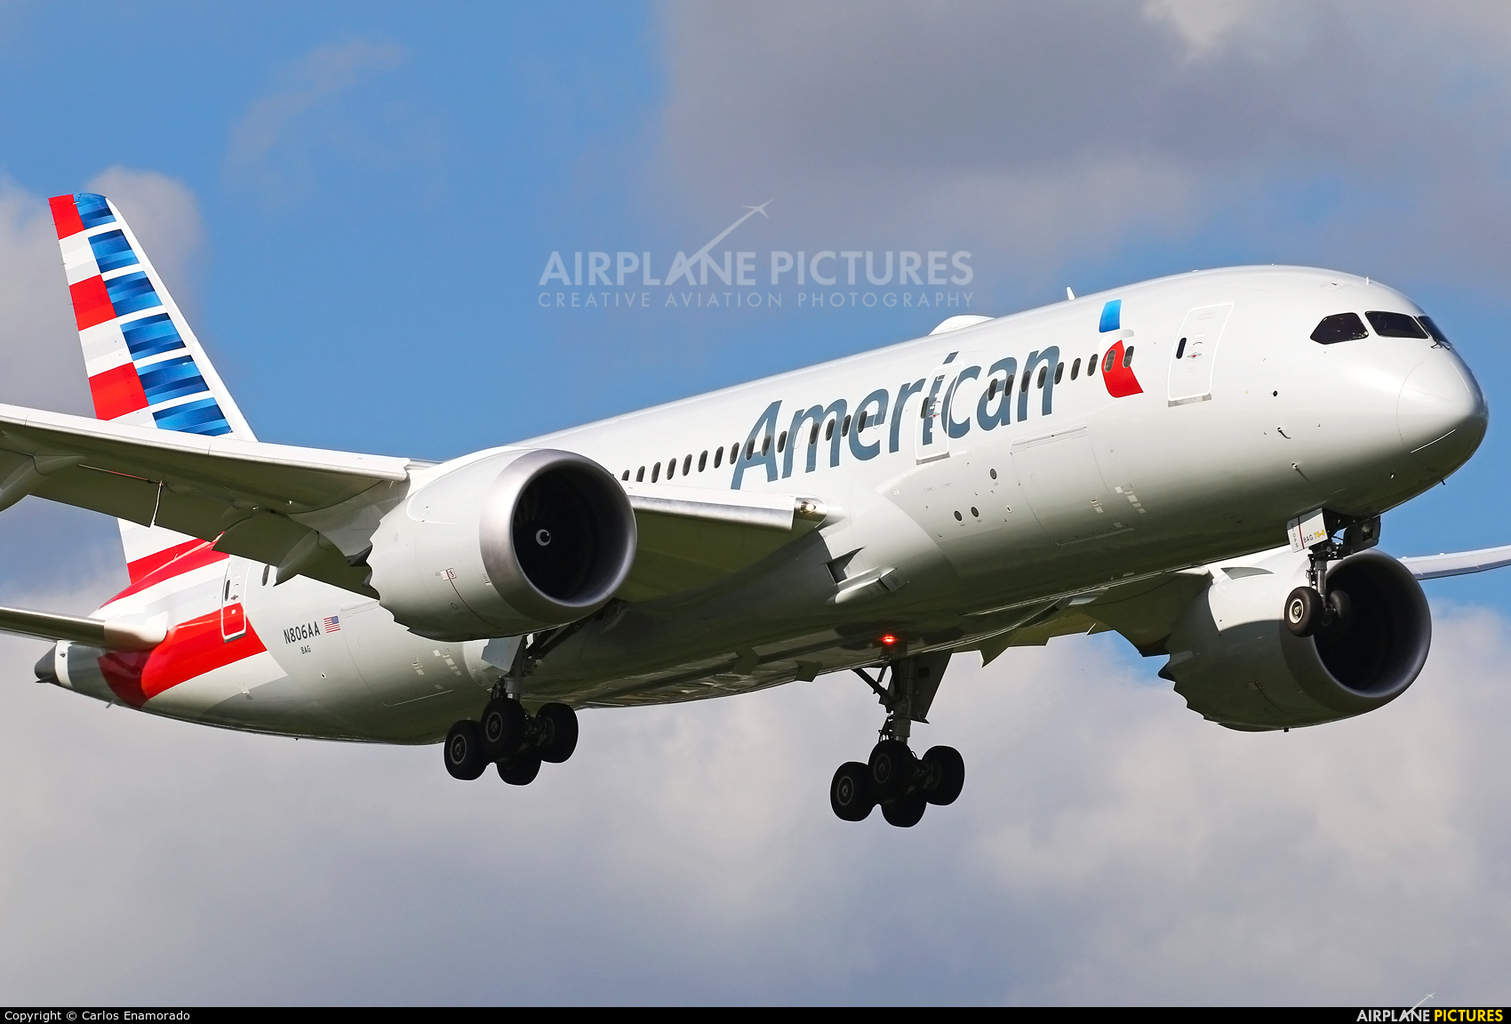 American Airlines sends Dreamliner to Manchester